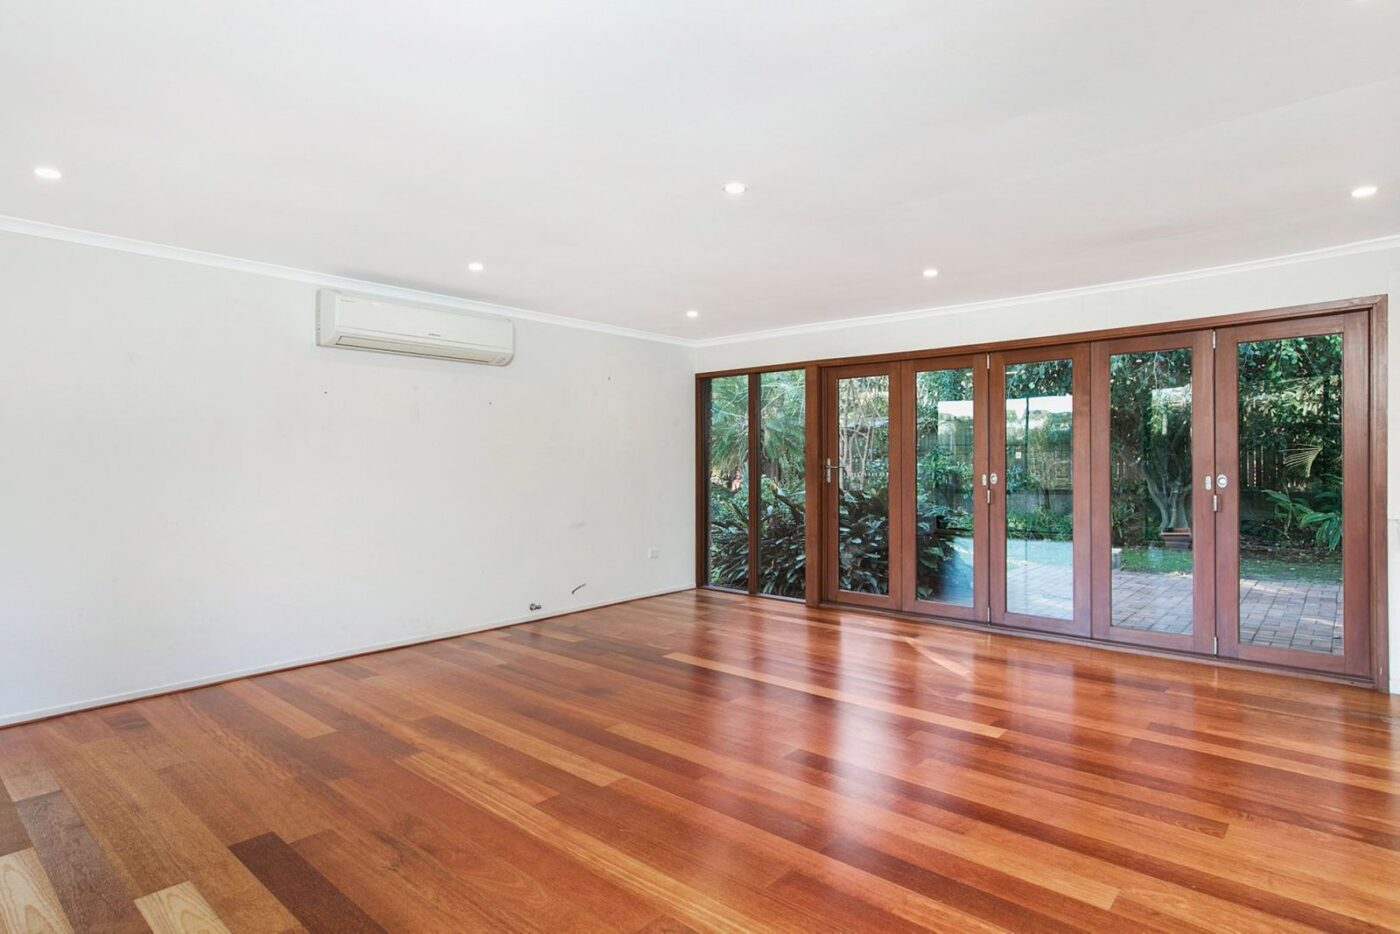 113 John Oxley Drive, Frenchs Forest